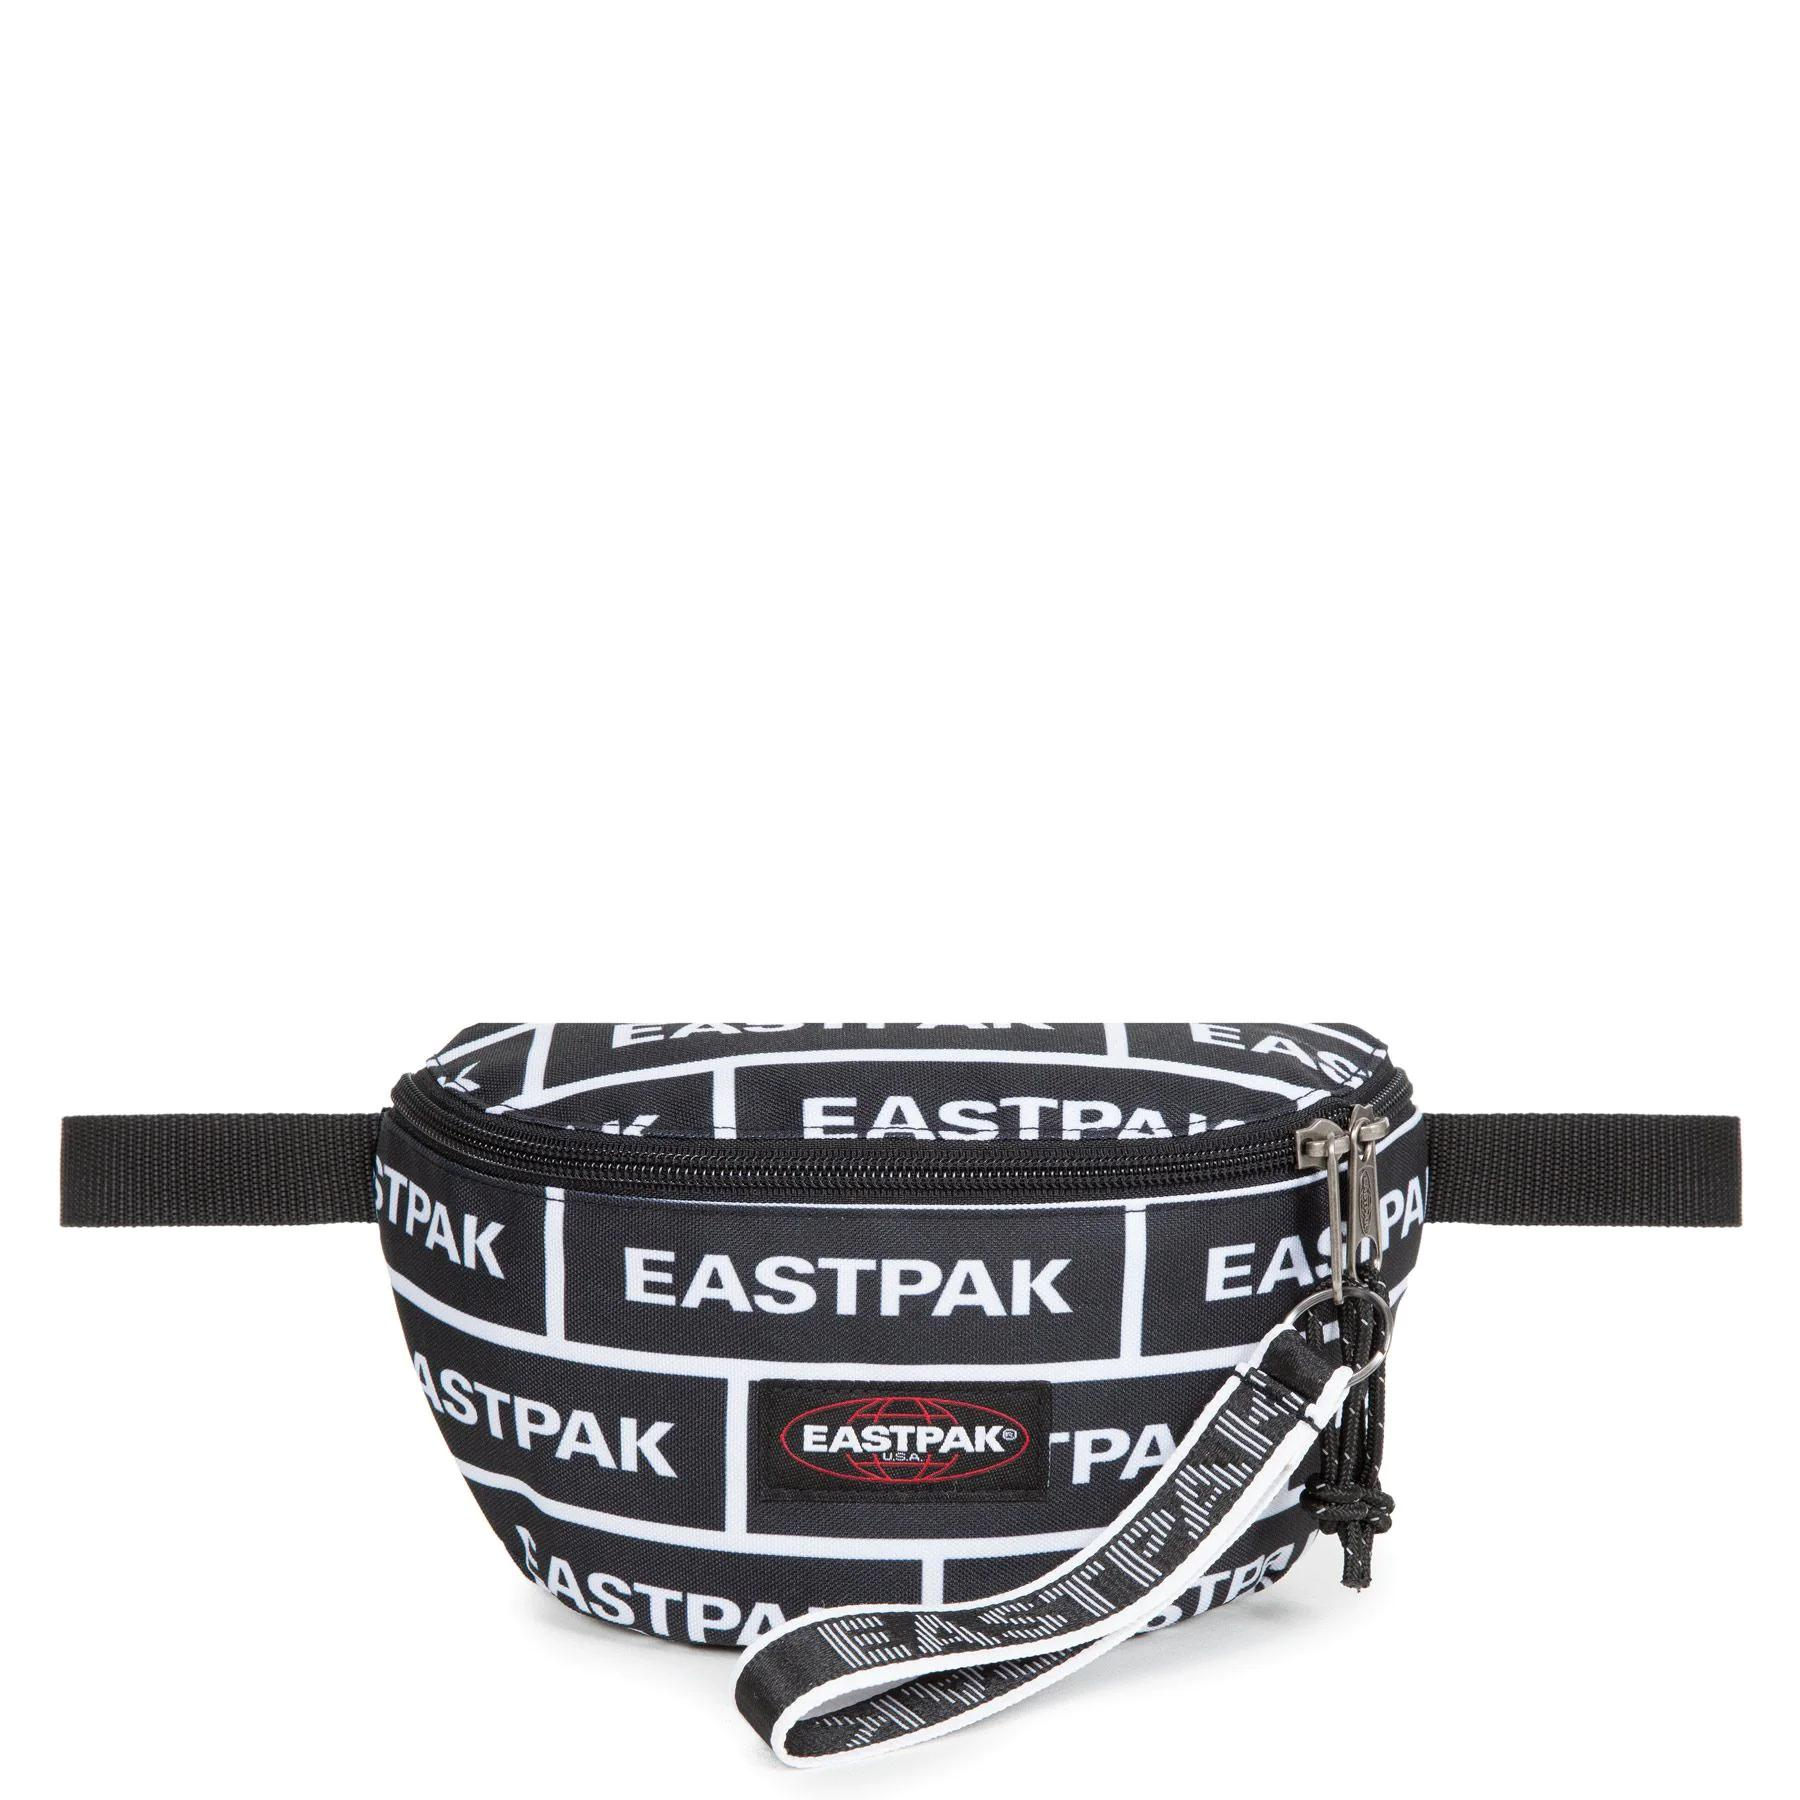 Eastpak Springer Bold branded